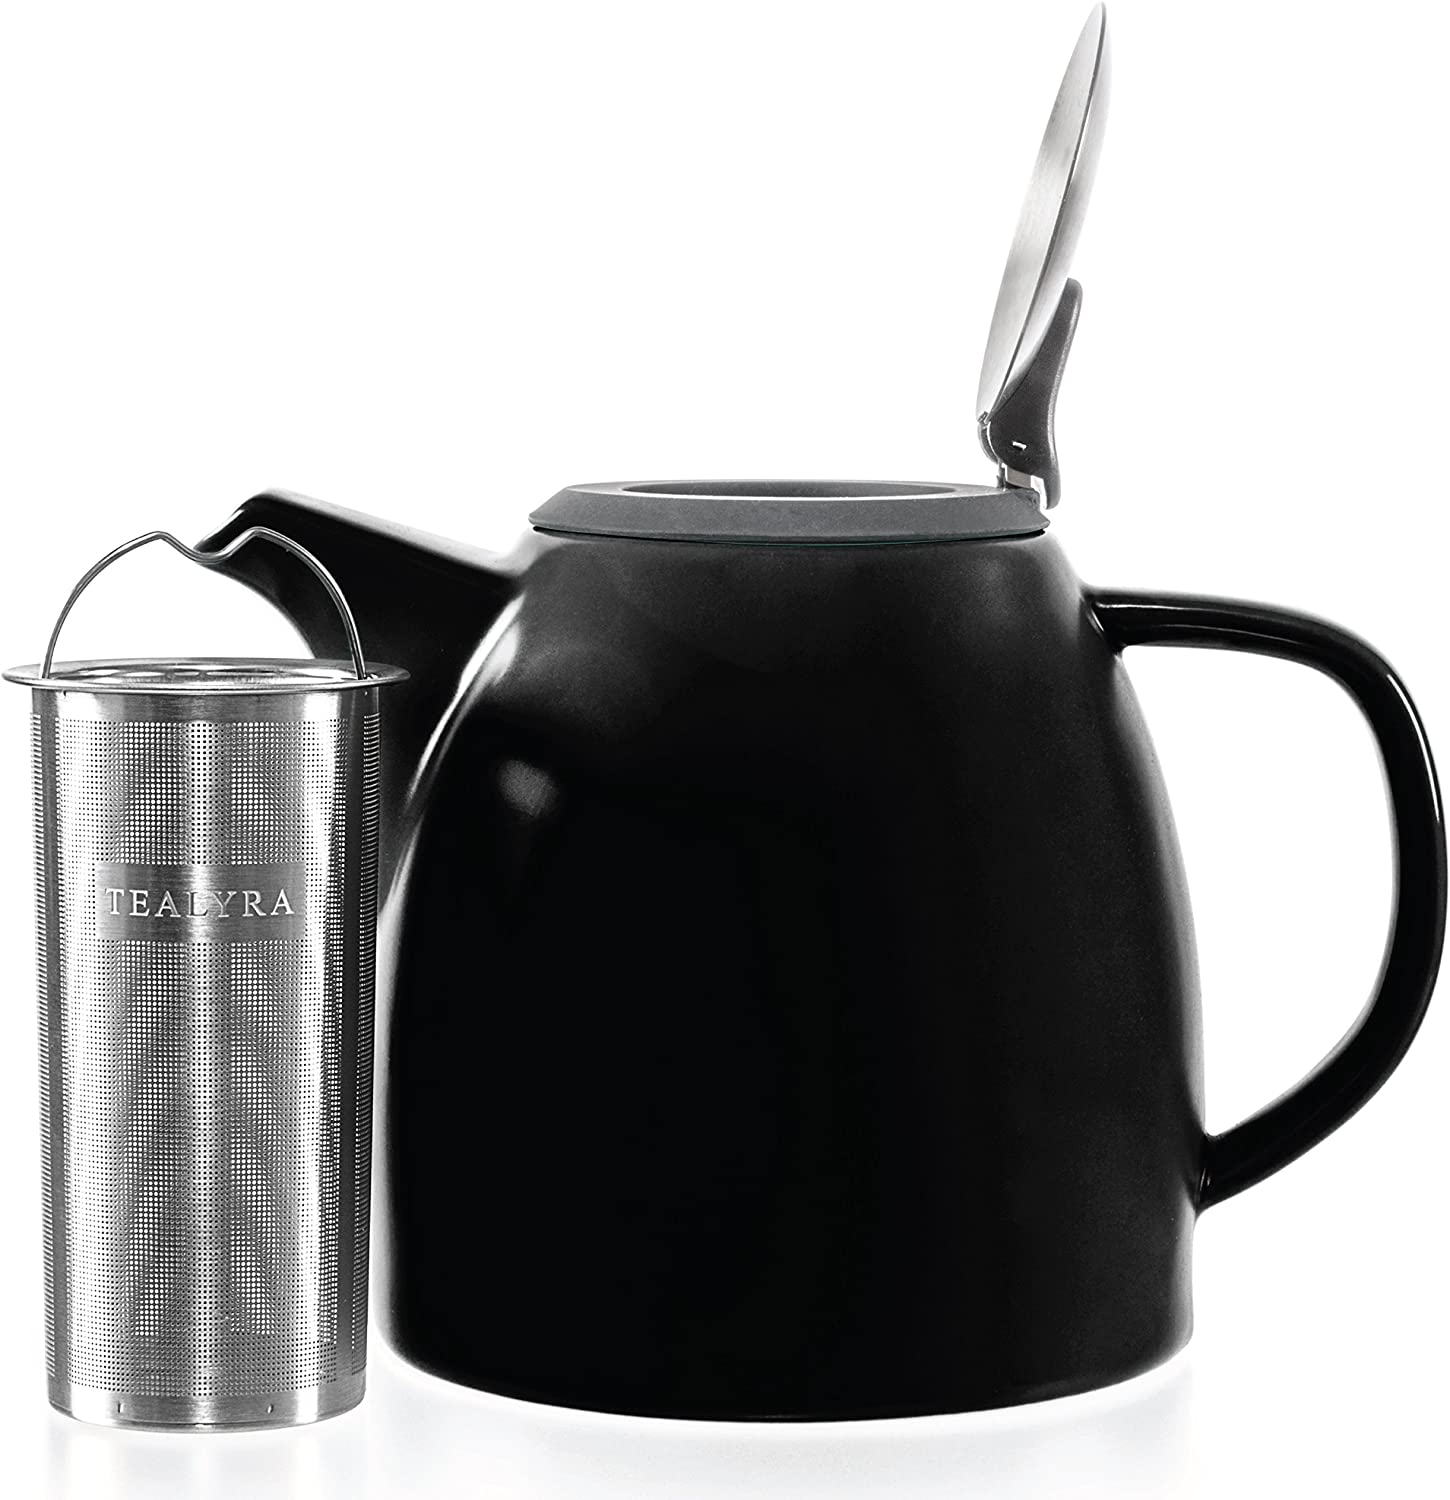 Tealyra - Drago Ceramic Teapot Black - 37oz (4-6 cups) - Large Stylish Teapot with Stainless Steel Lid Extra-Fine Infuser To Brew Loose Leaf Tea - Leed-Free - 1100ml